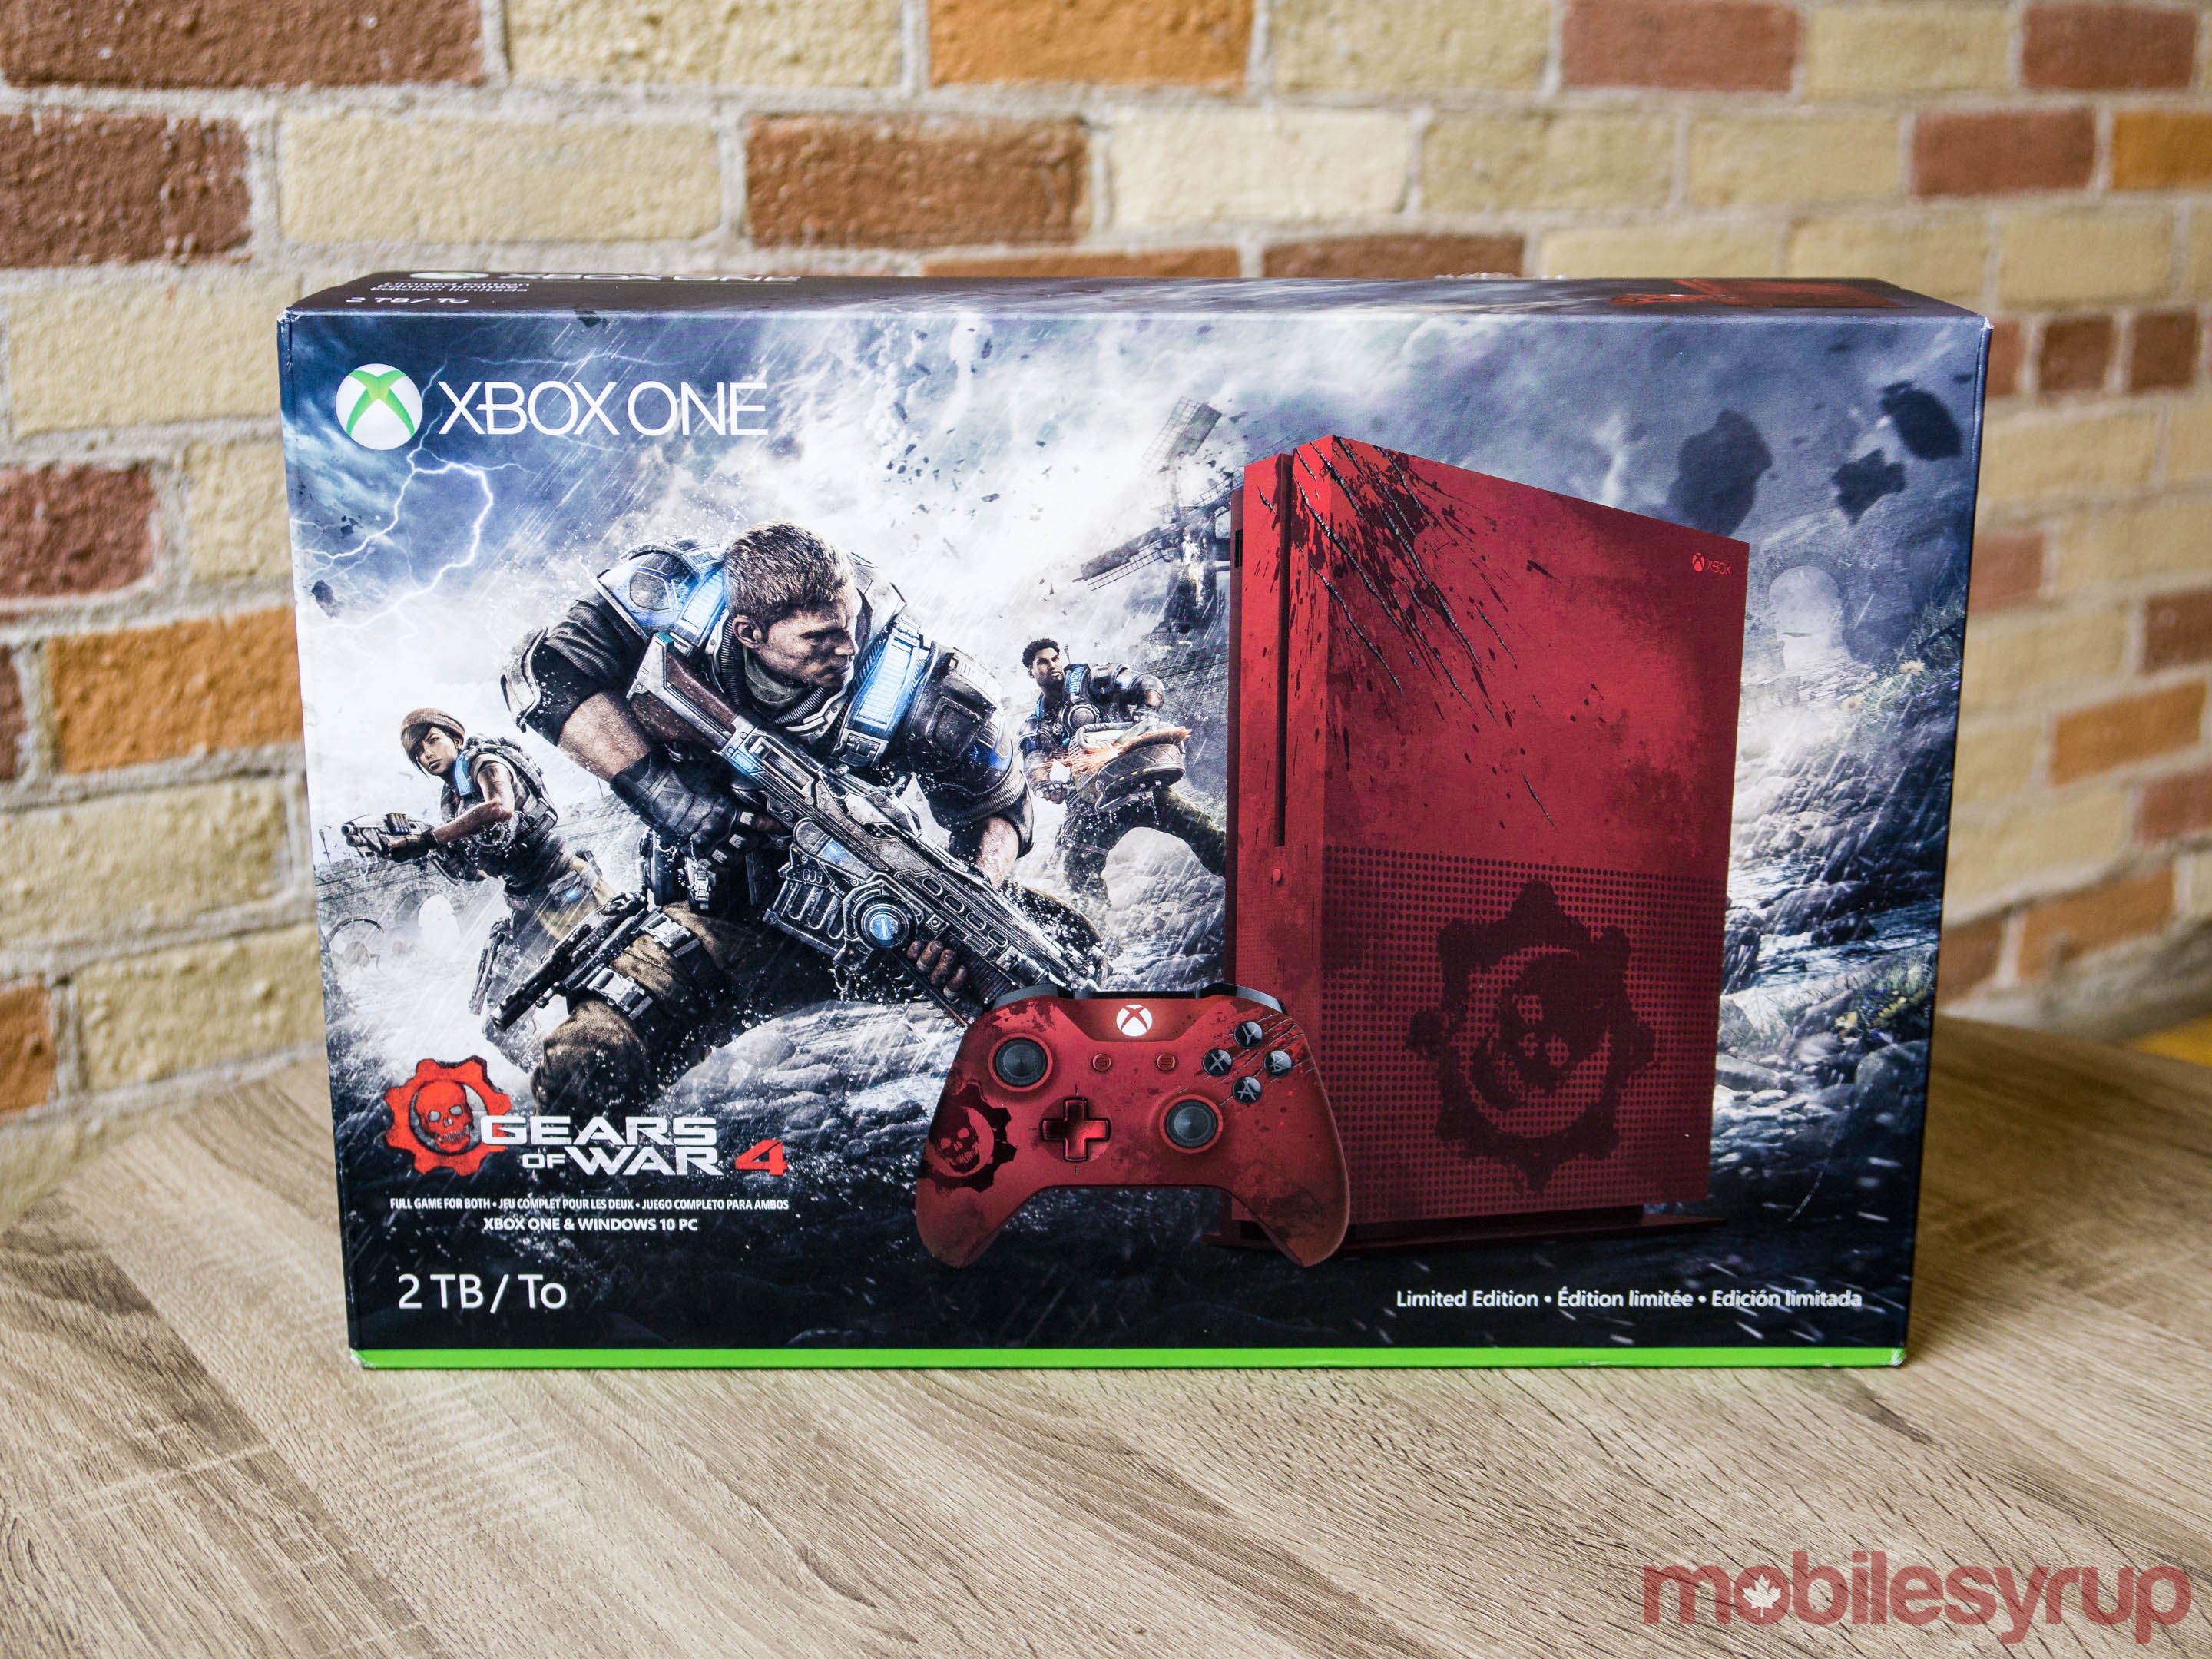 Hands On With The Gears Of War 4 Limited Edition Xbox One